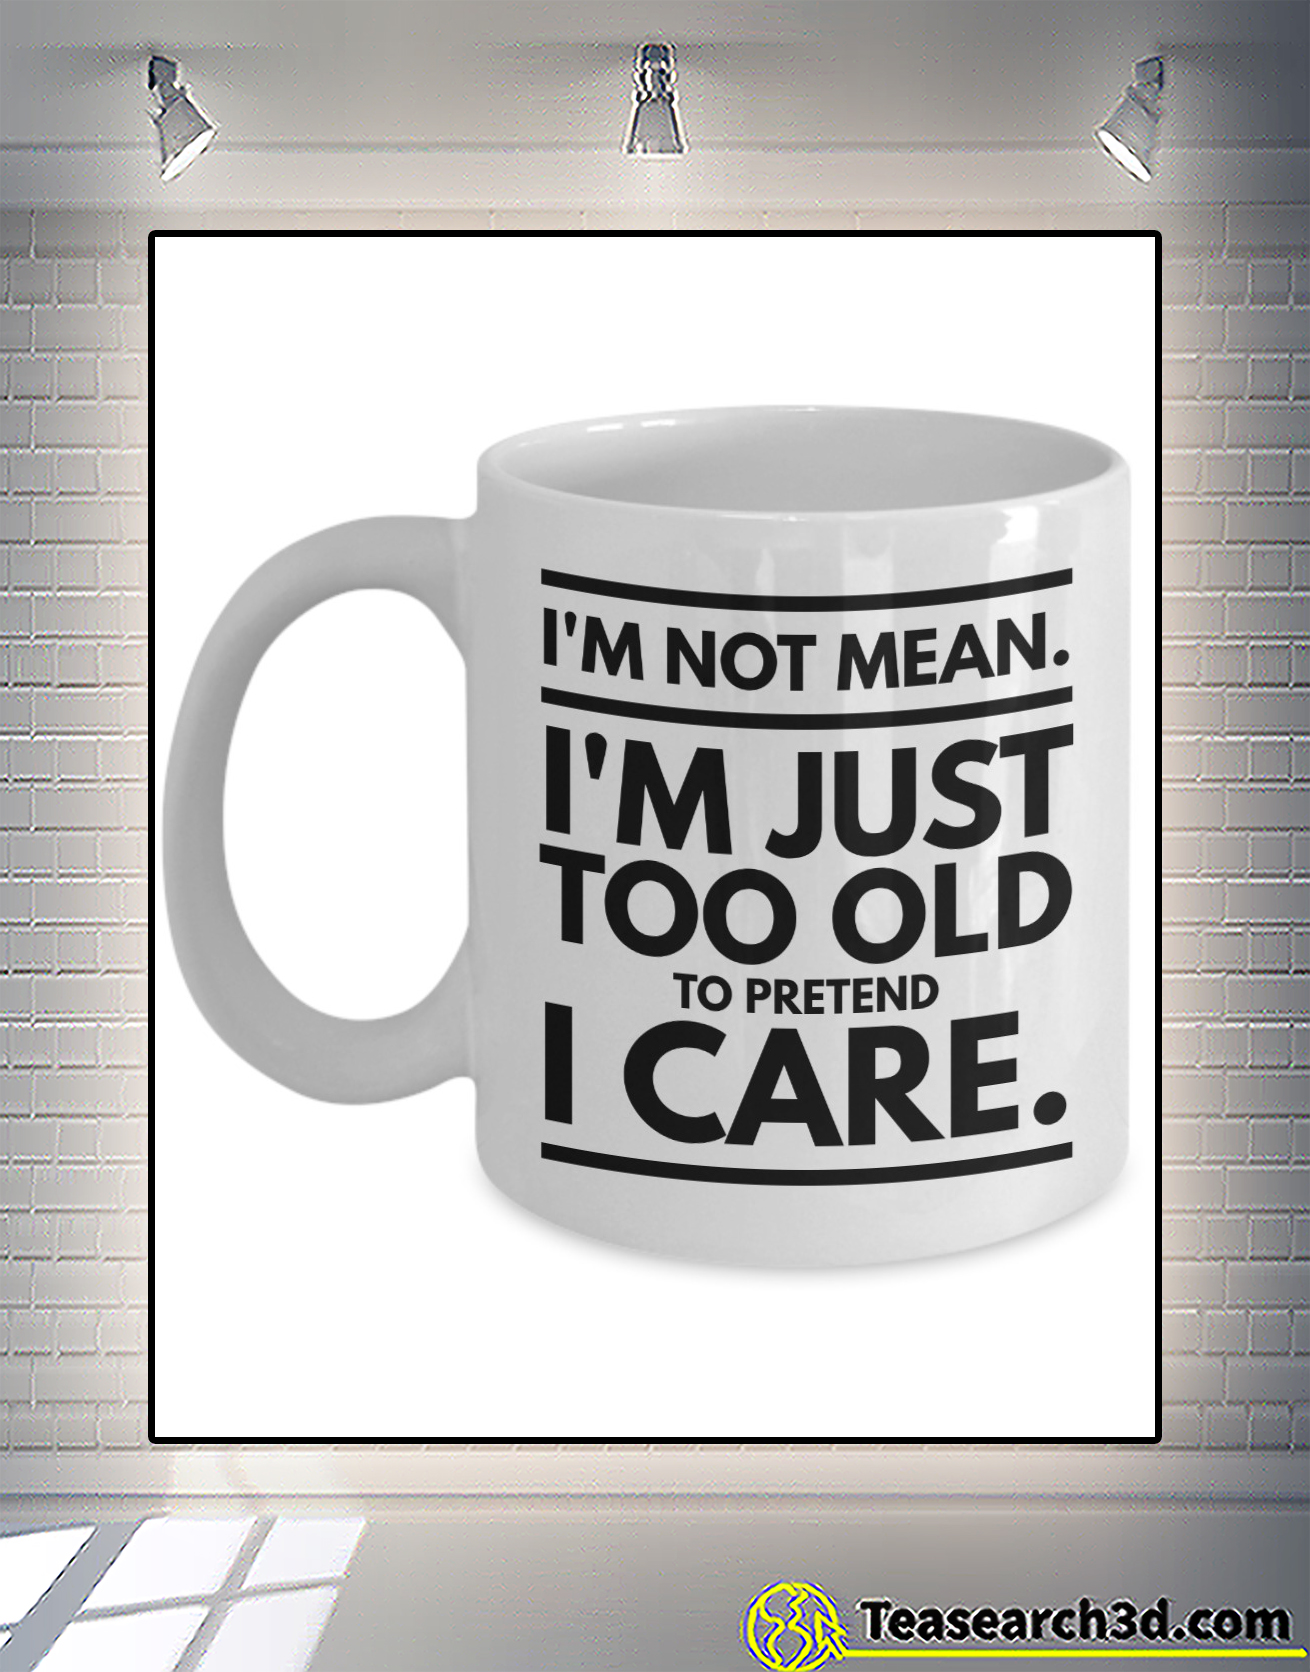 I'm not mean I'm just too old to pretend I care mug 1